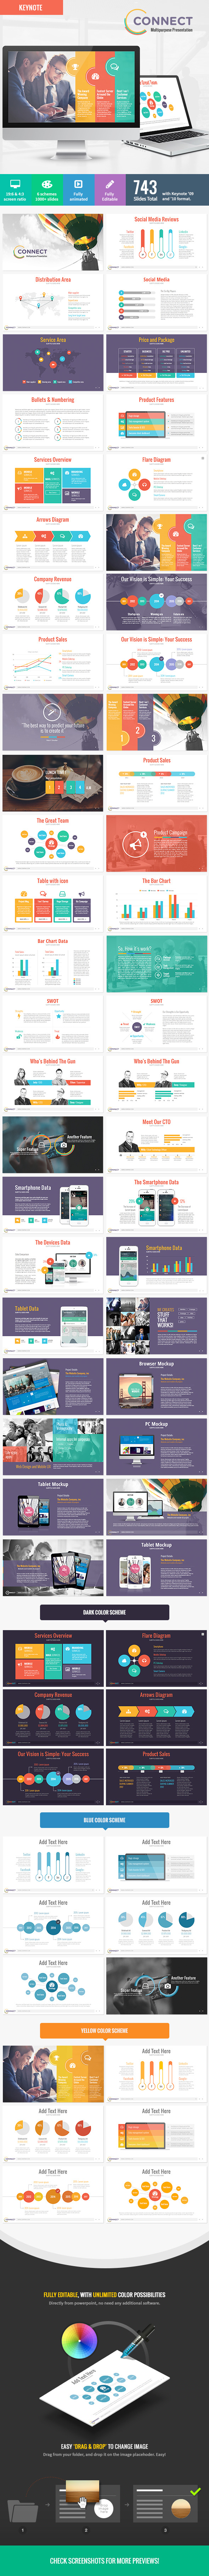 Connect - Modern Keynote Template - Keynote Templates Presentation Templates